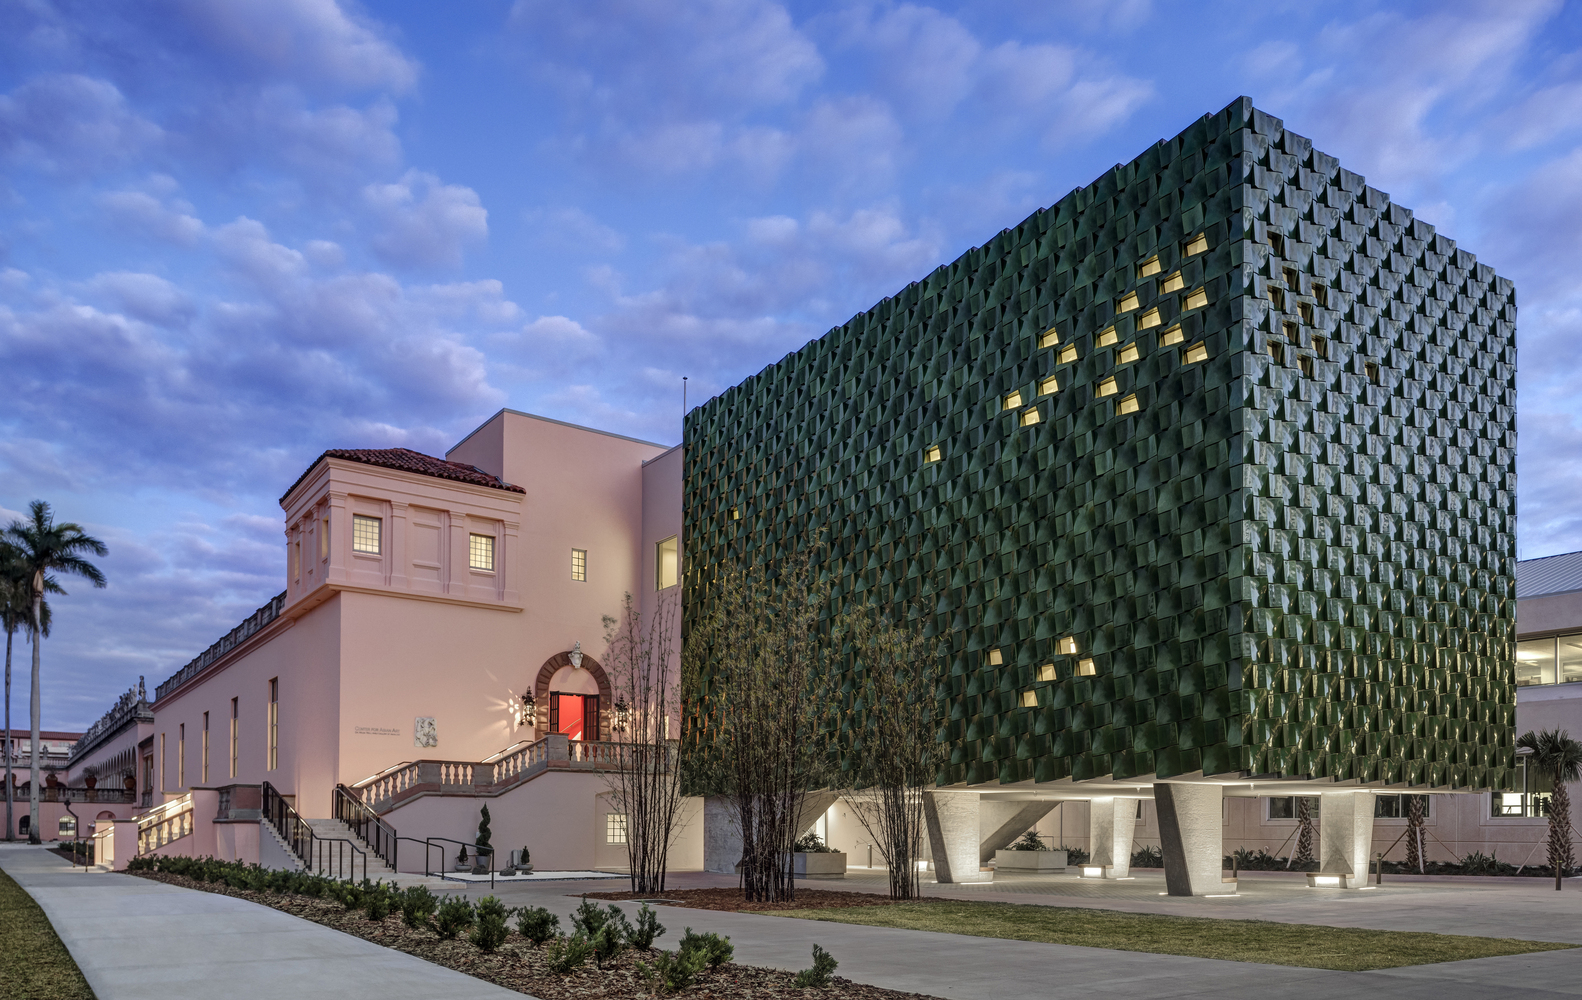 Gallery of AIA Announces Winners of the 2018 Topaz Medallion ... on gallery l, gallery i, gallery v, gallery b, gallery j, gallery a, gallery m, gallery h, gallery f, gallery k, gallery e, gallery n, gallery g, gallery d,